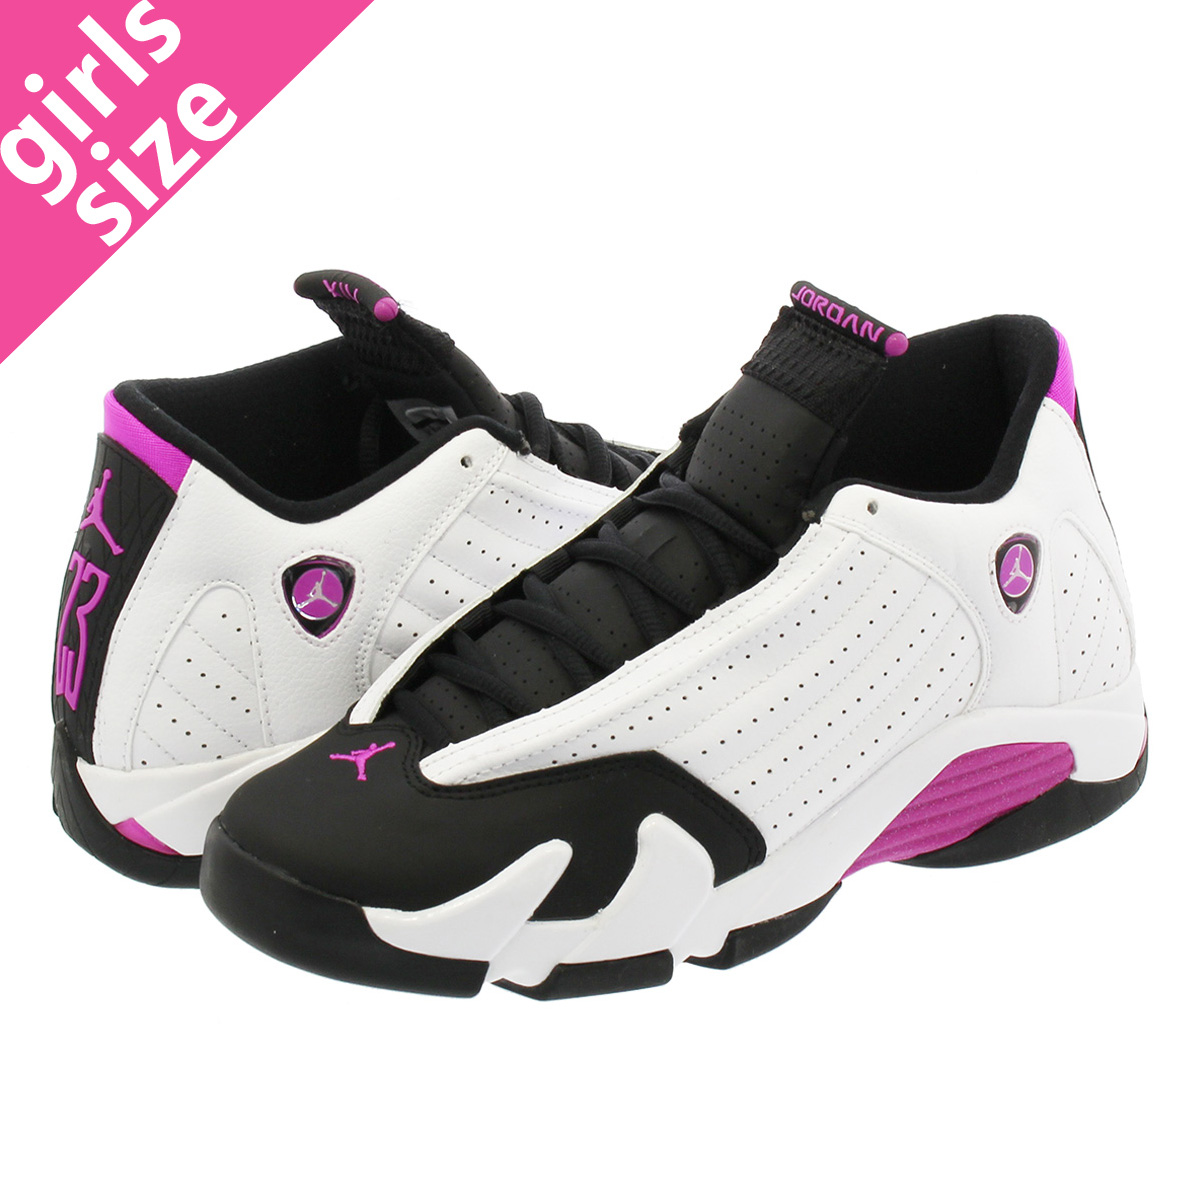 the latest 53bc4 65b8d NIKE AIR JORDAN 14 RETRO GS Nike Air Jordan 14 nostalgic GS WHITE/FUCHSIA  FLASH/BLACK 654,969-119